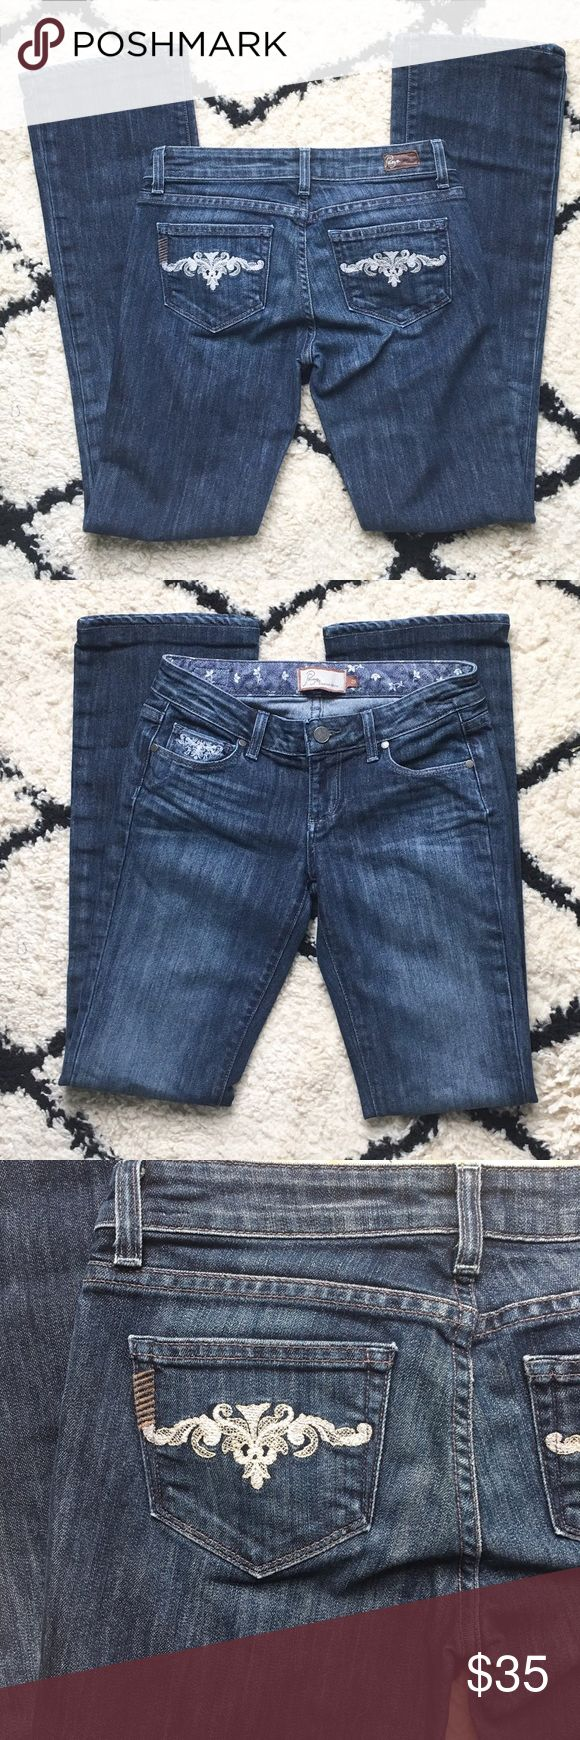 "Paige Jeans🎈$20 JEAN SALE🎈Like-new These jeans are Bootcut, like-new and are the Benedict Canyon style. 31"" inseam. Reasonable offers always welcome and DON'T FORGET TO BUNDLE FOR A DISCOUNT. Thanks for looking!! Xoxo -J Paige Jeans Jeans Boot Cut"